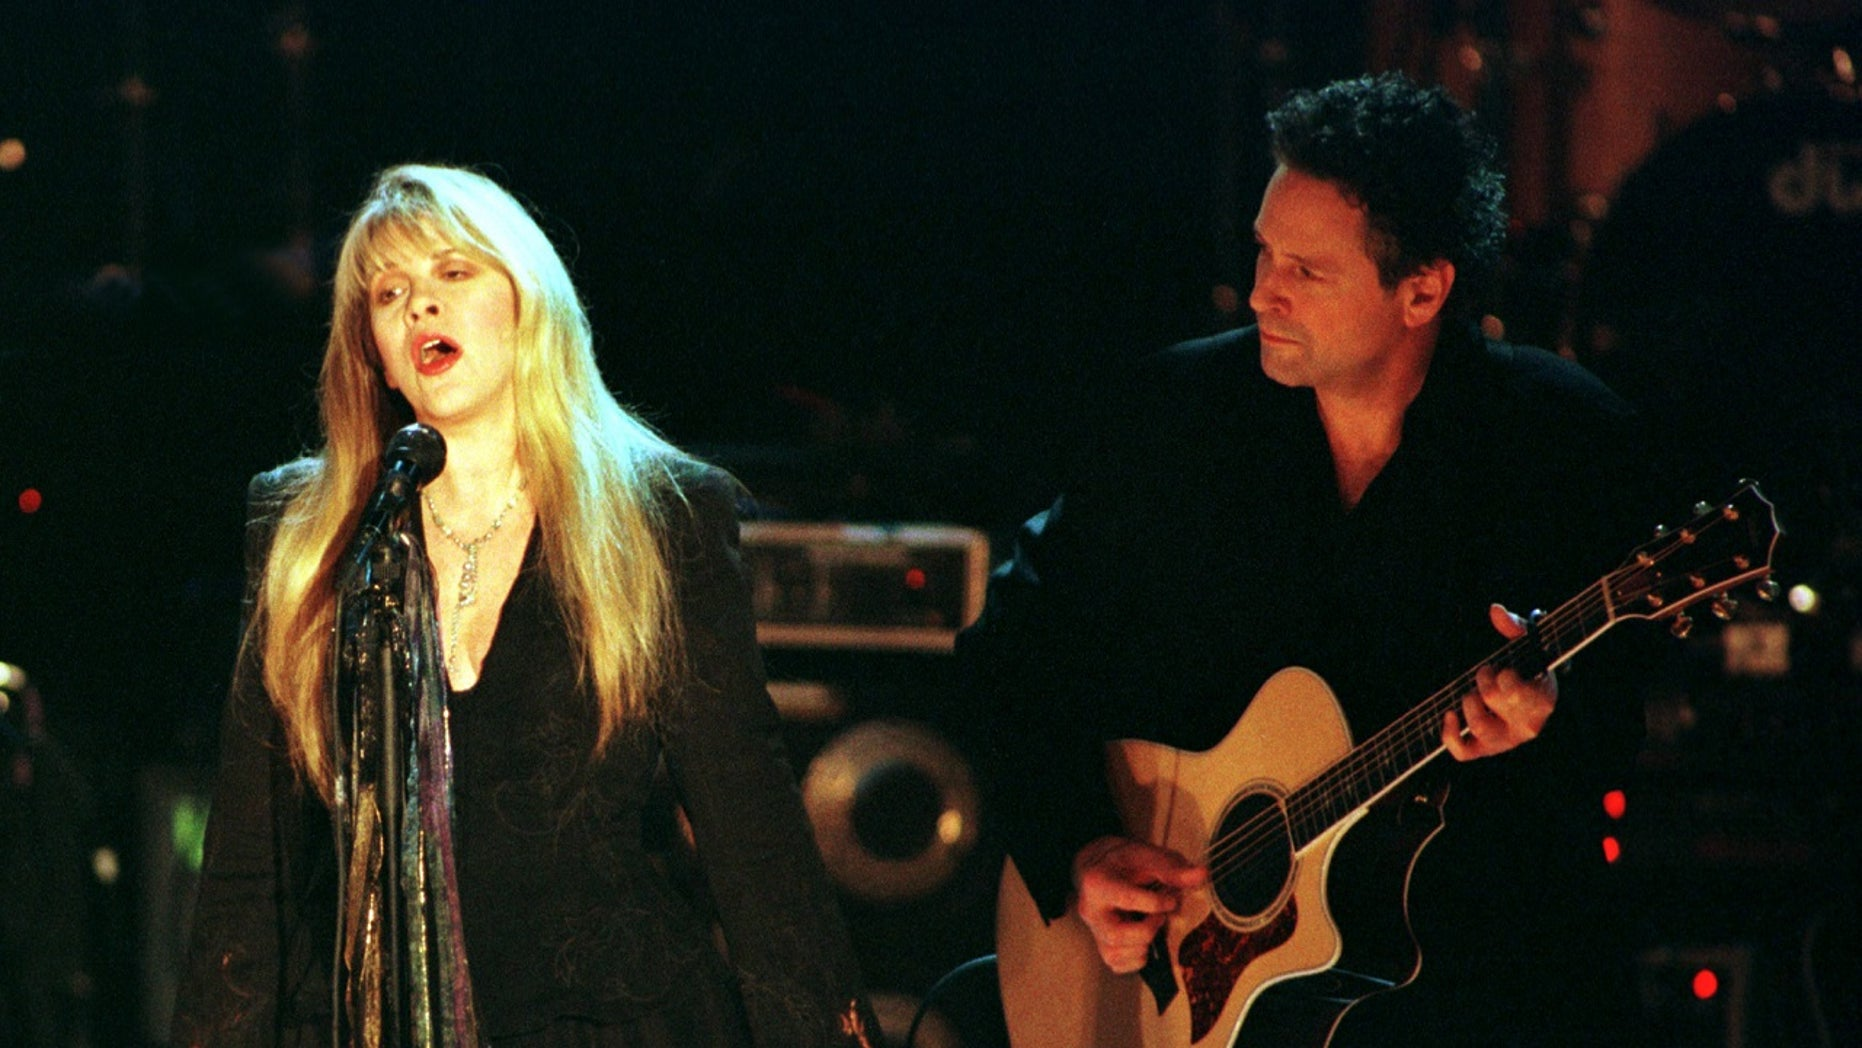 "A Fleetwood Mac tune from the 1977 album ""Rumors"" is charting after it was part of a meme posted on Twitter late last month, Billboard reported Tuesday. Pictured are band members Stevie Nicks and Lindsey Buckingham."